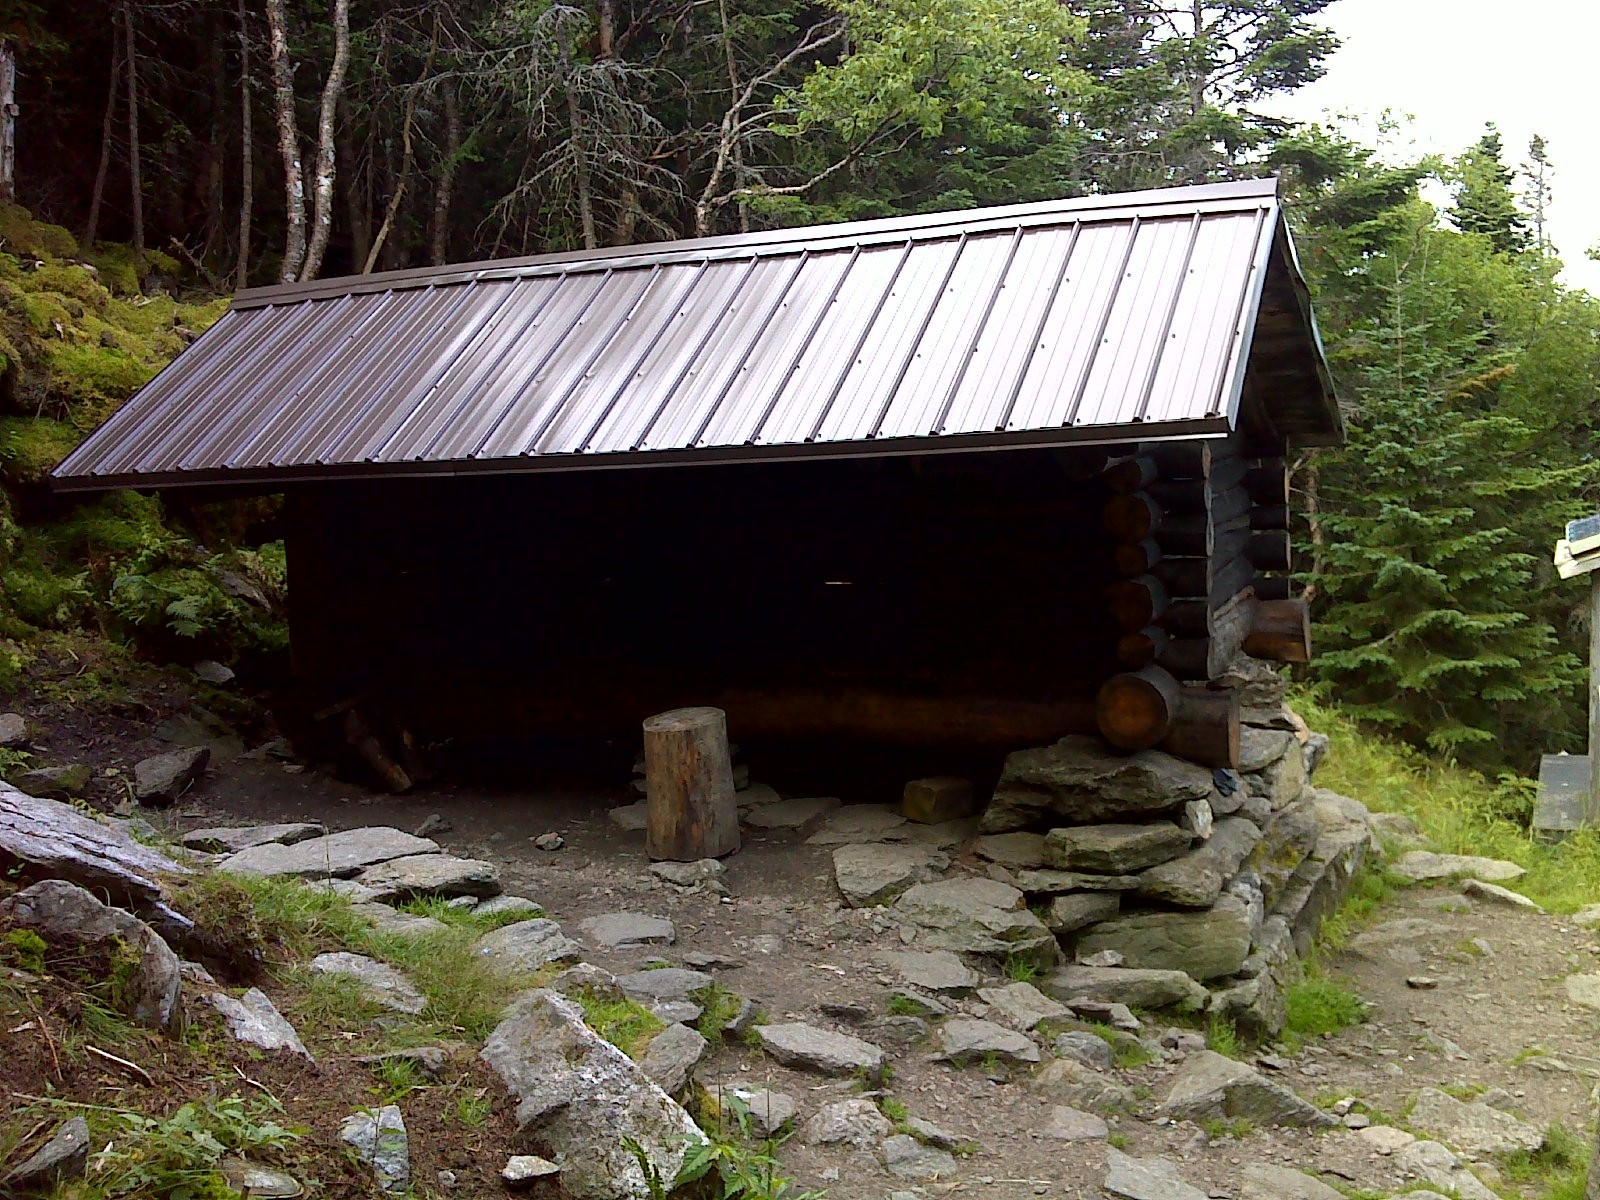 Fotoğraf AT, Pinkham Notch, plus Lost pond trail to Crag Camp, Perch, Log Cabin, and Gray Knob shelters 22-JUL-12 04:37:46 PM